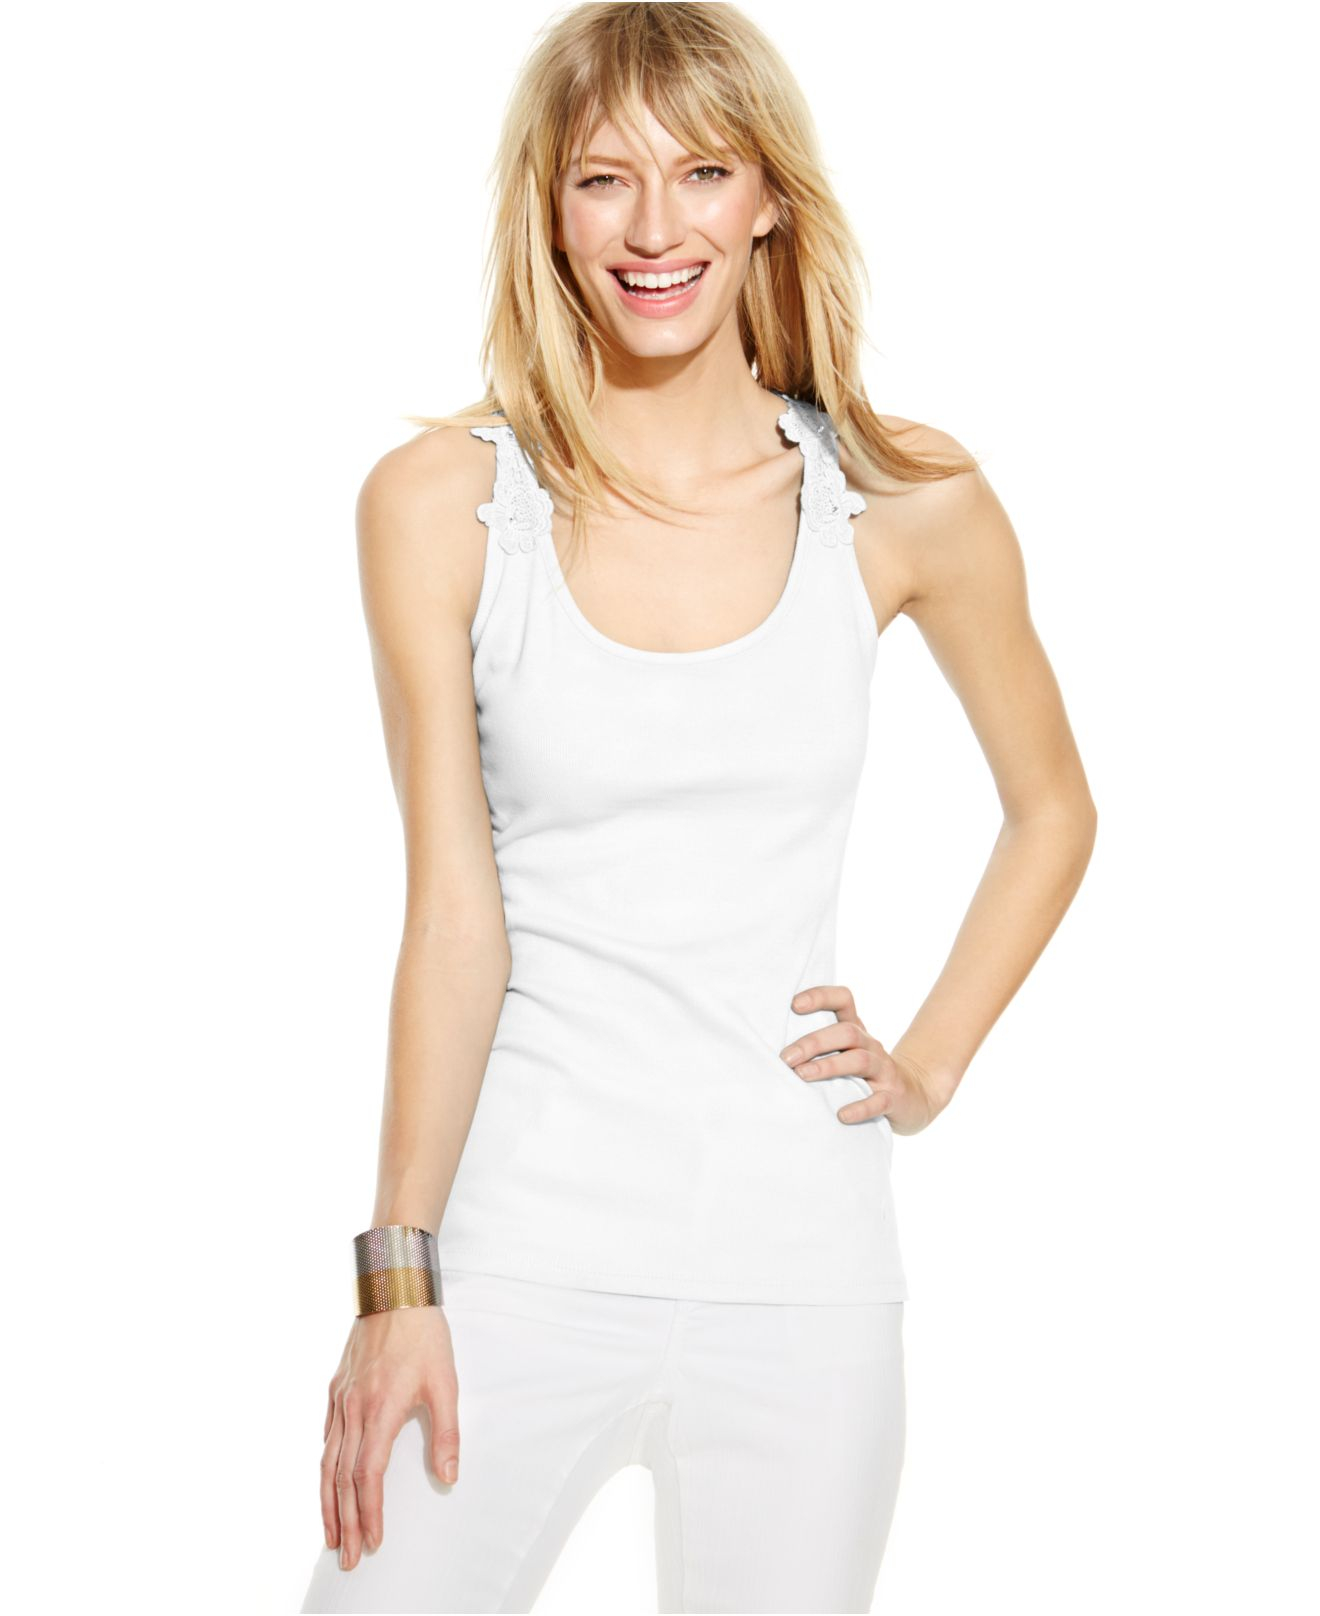 Inc international concepts Crochet-strap Tank Top in White | Lyst